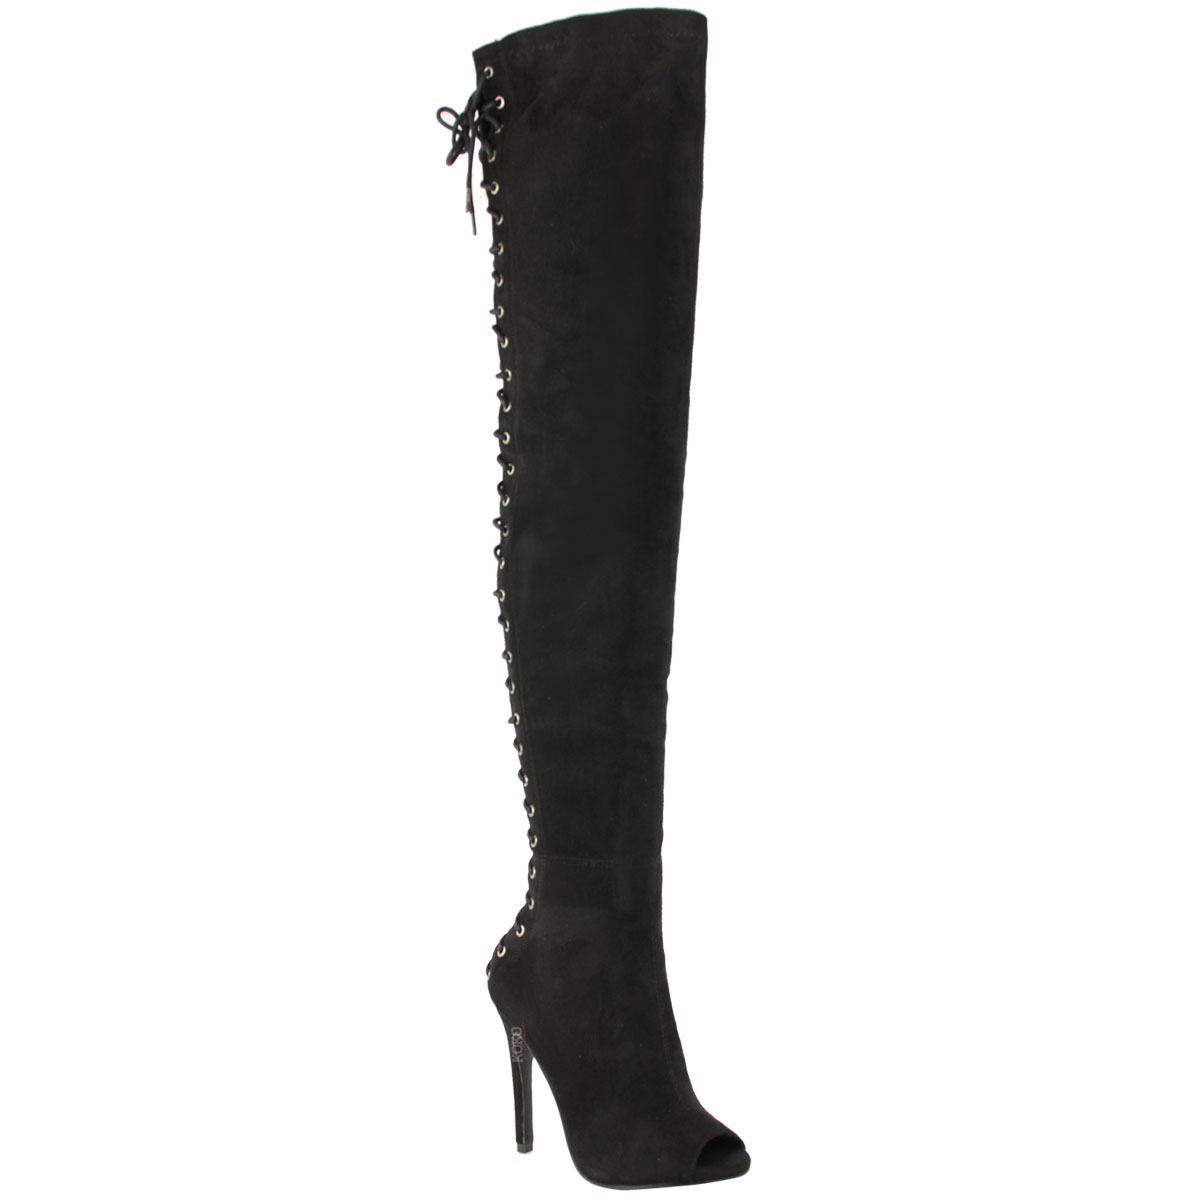 WOMENS LADIES LACE UP THIGH HIGH OVER THE KNEE BOOTS OPEN TOE PARTY CELEB SIZE